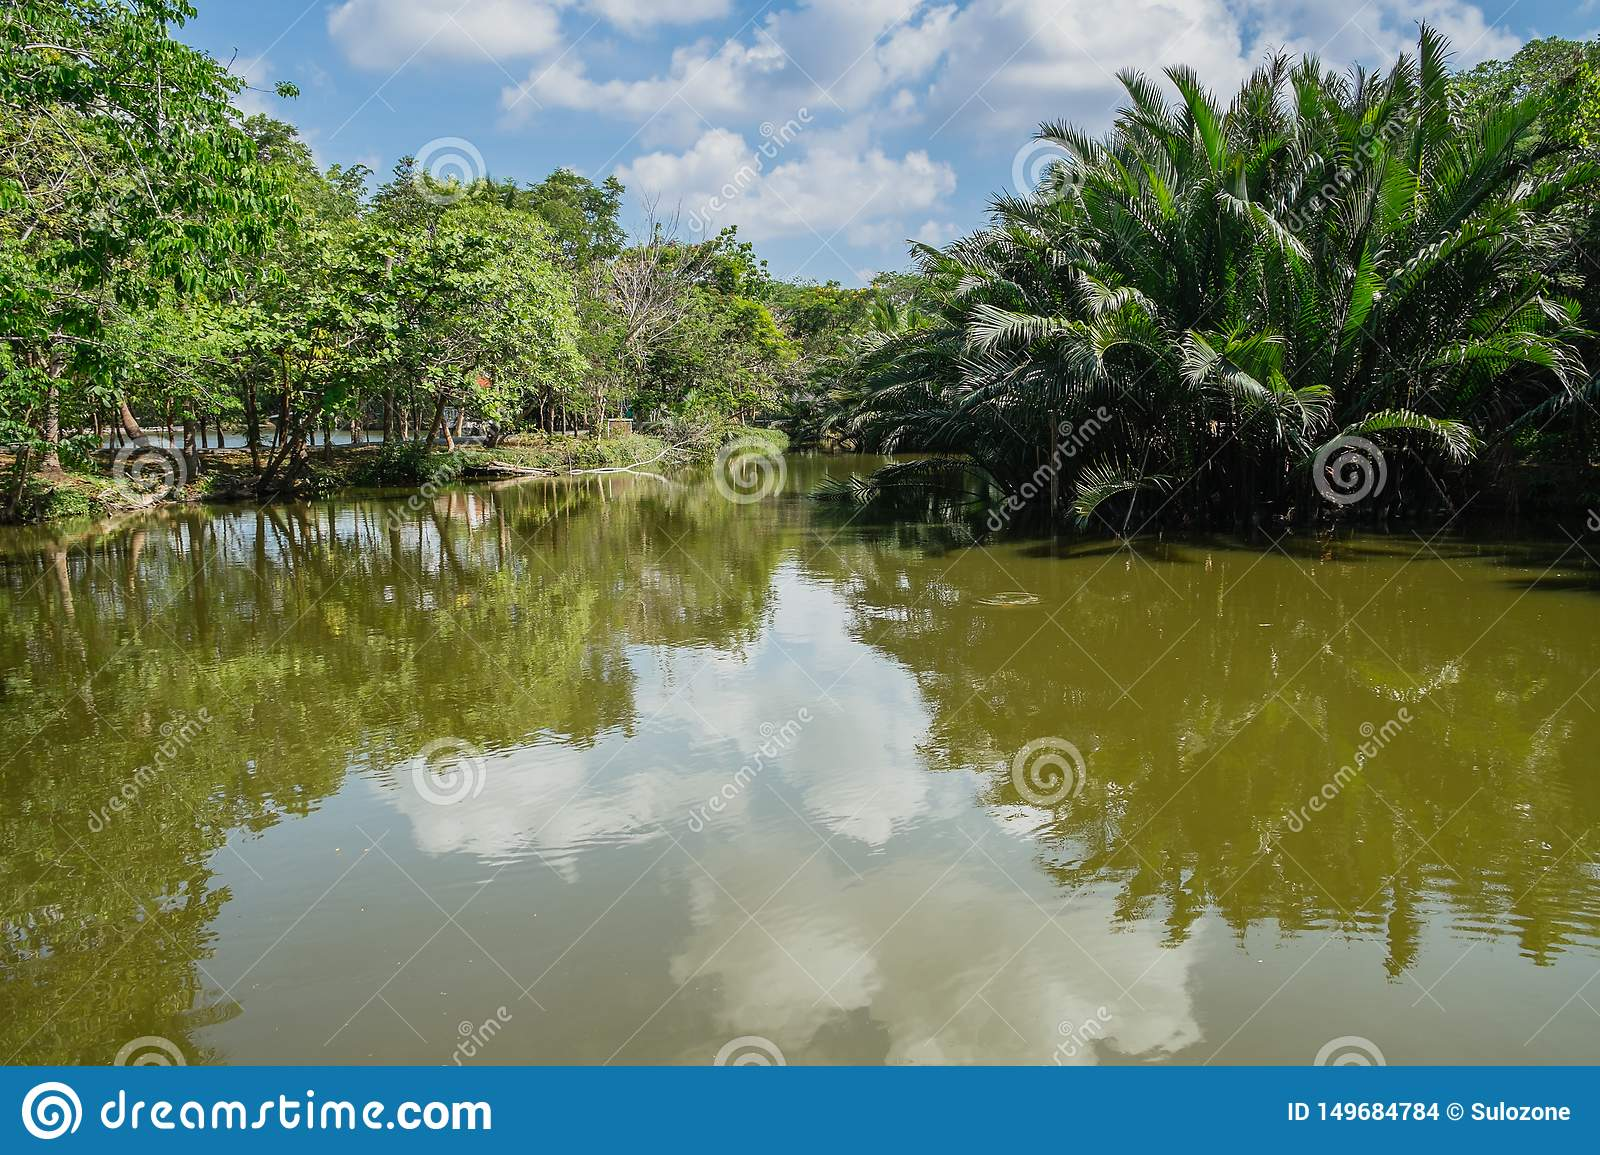 Creek flowing through palm grove with reflection of clouds and sky in the water.